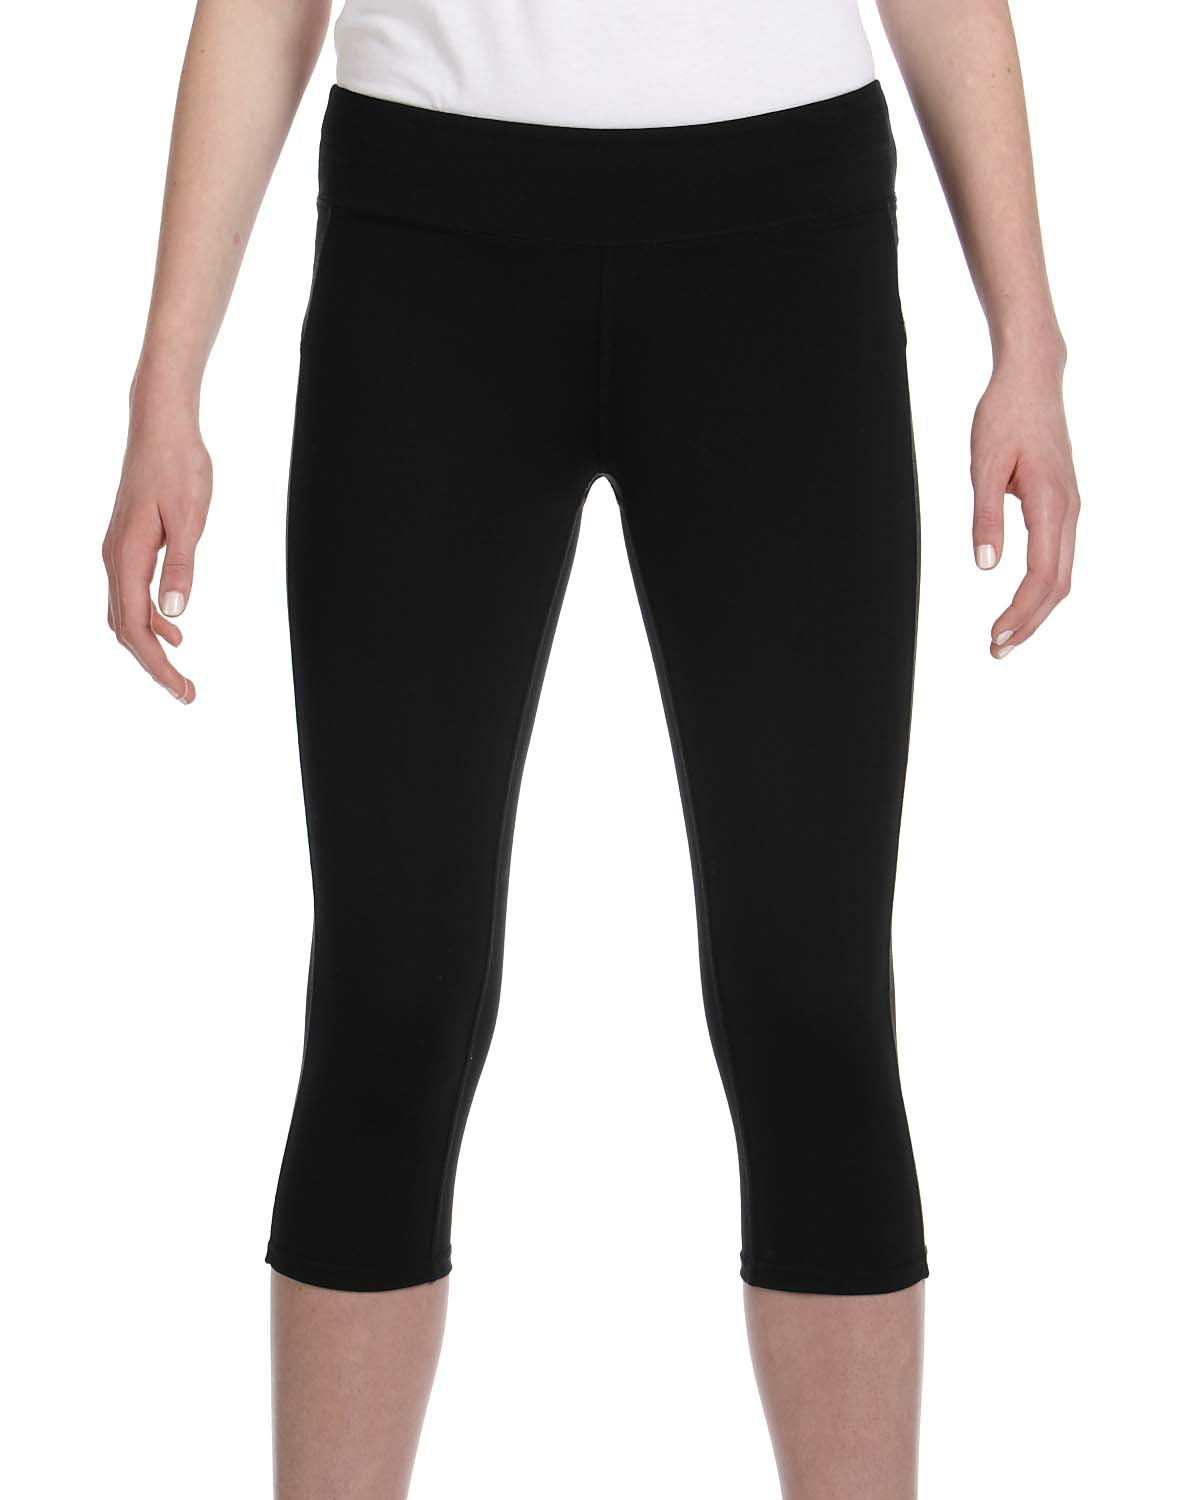 alo - Ladies' Capri Legging